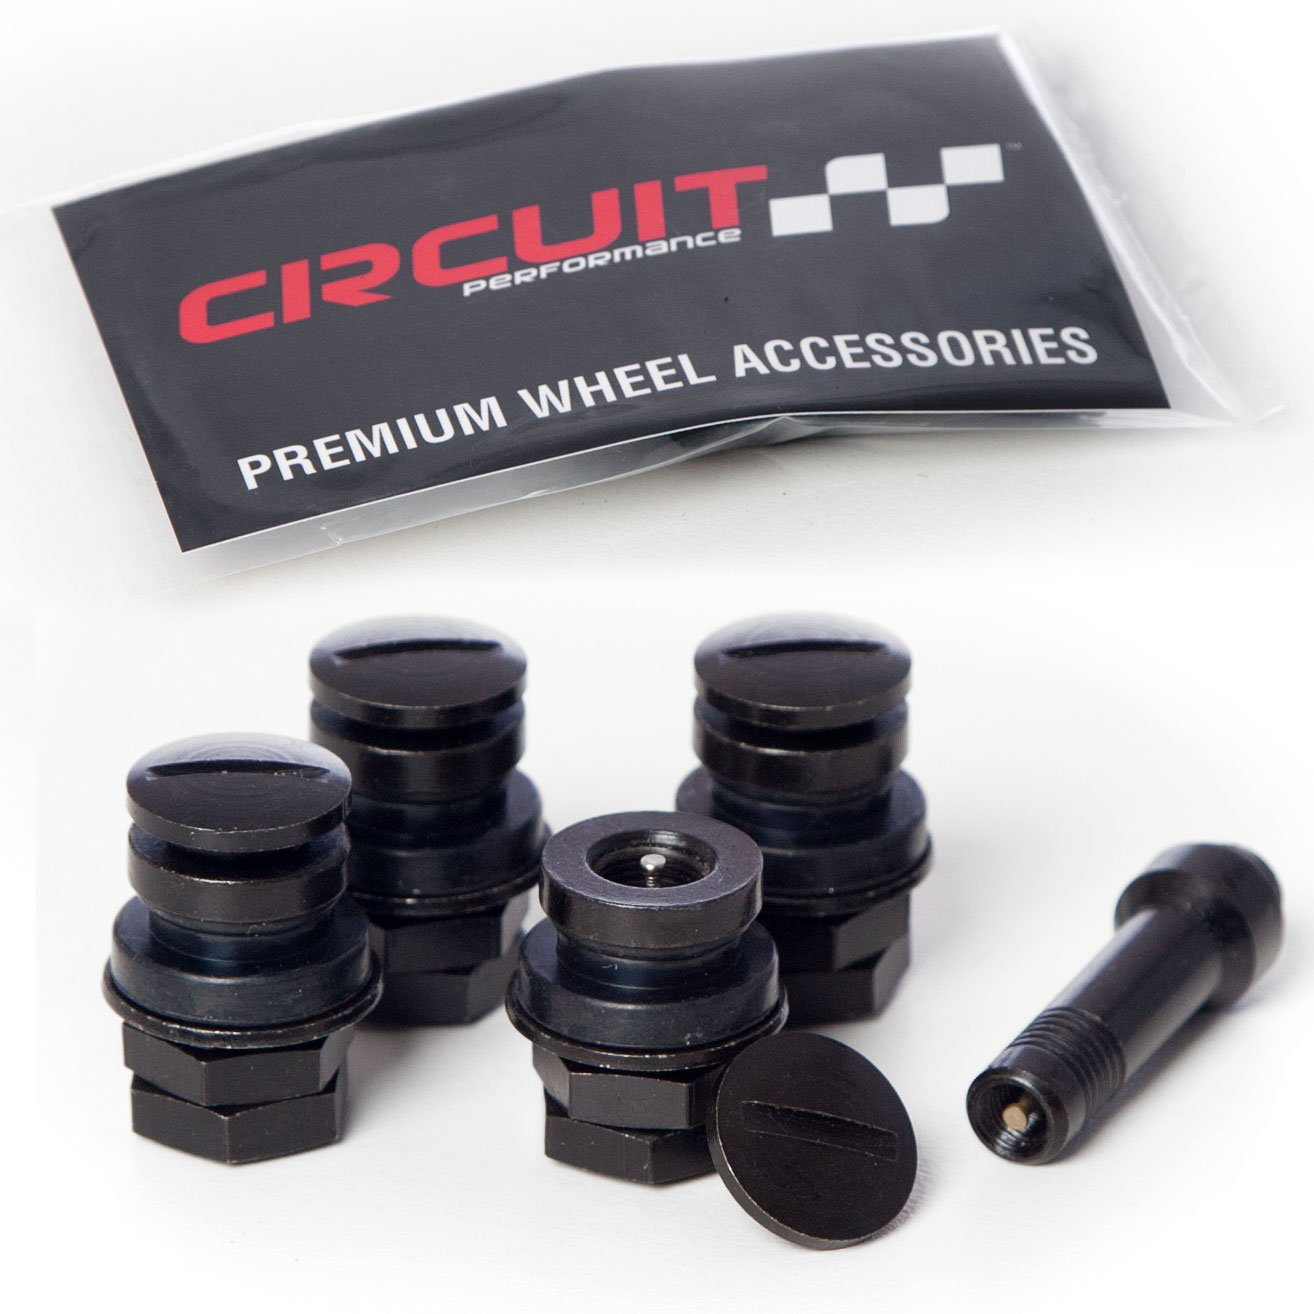 Circuit Performance Black Bolt-In Flush Mount Valve Stems (Set of 4) by Circuit Performance (Image #1)